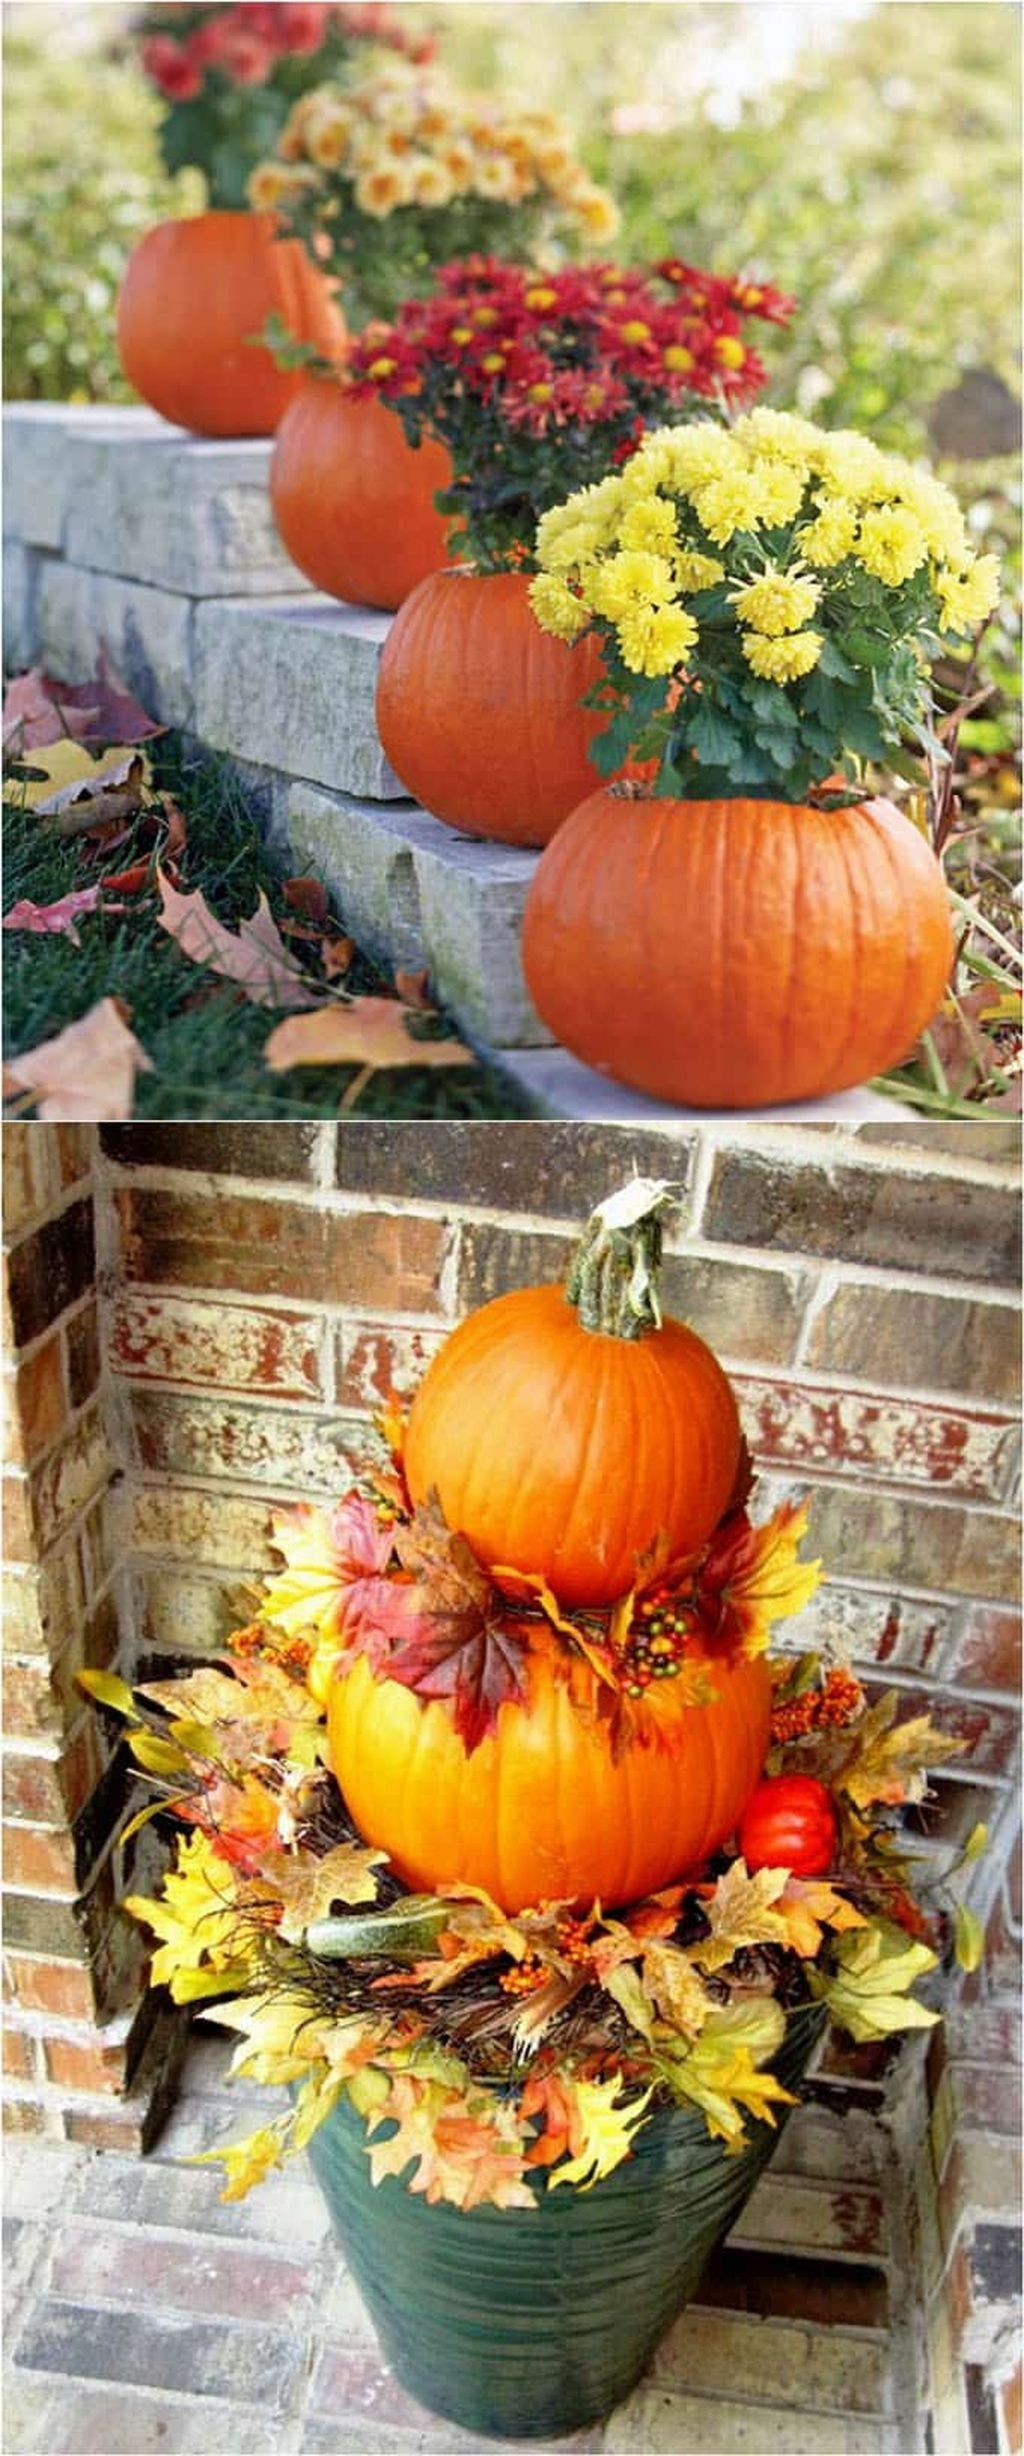 88 Scary Fall Yard Decoration Ideas You Should Try Yards - diy halloween decorations scary